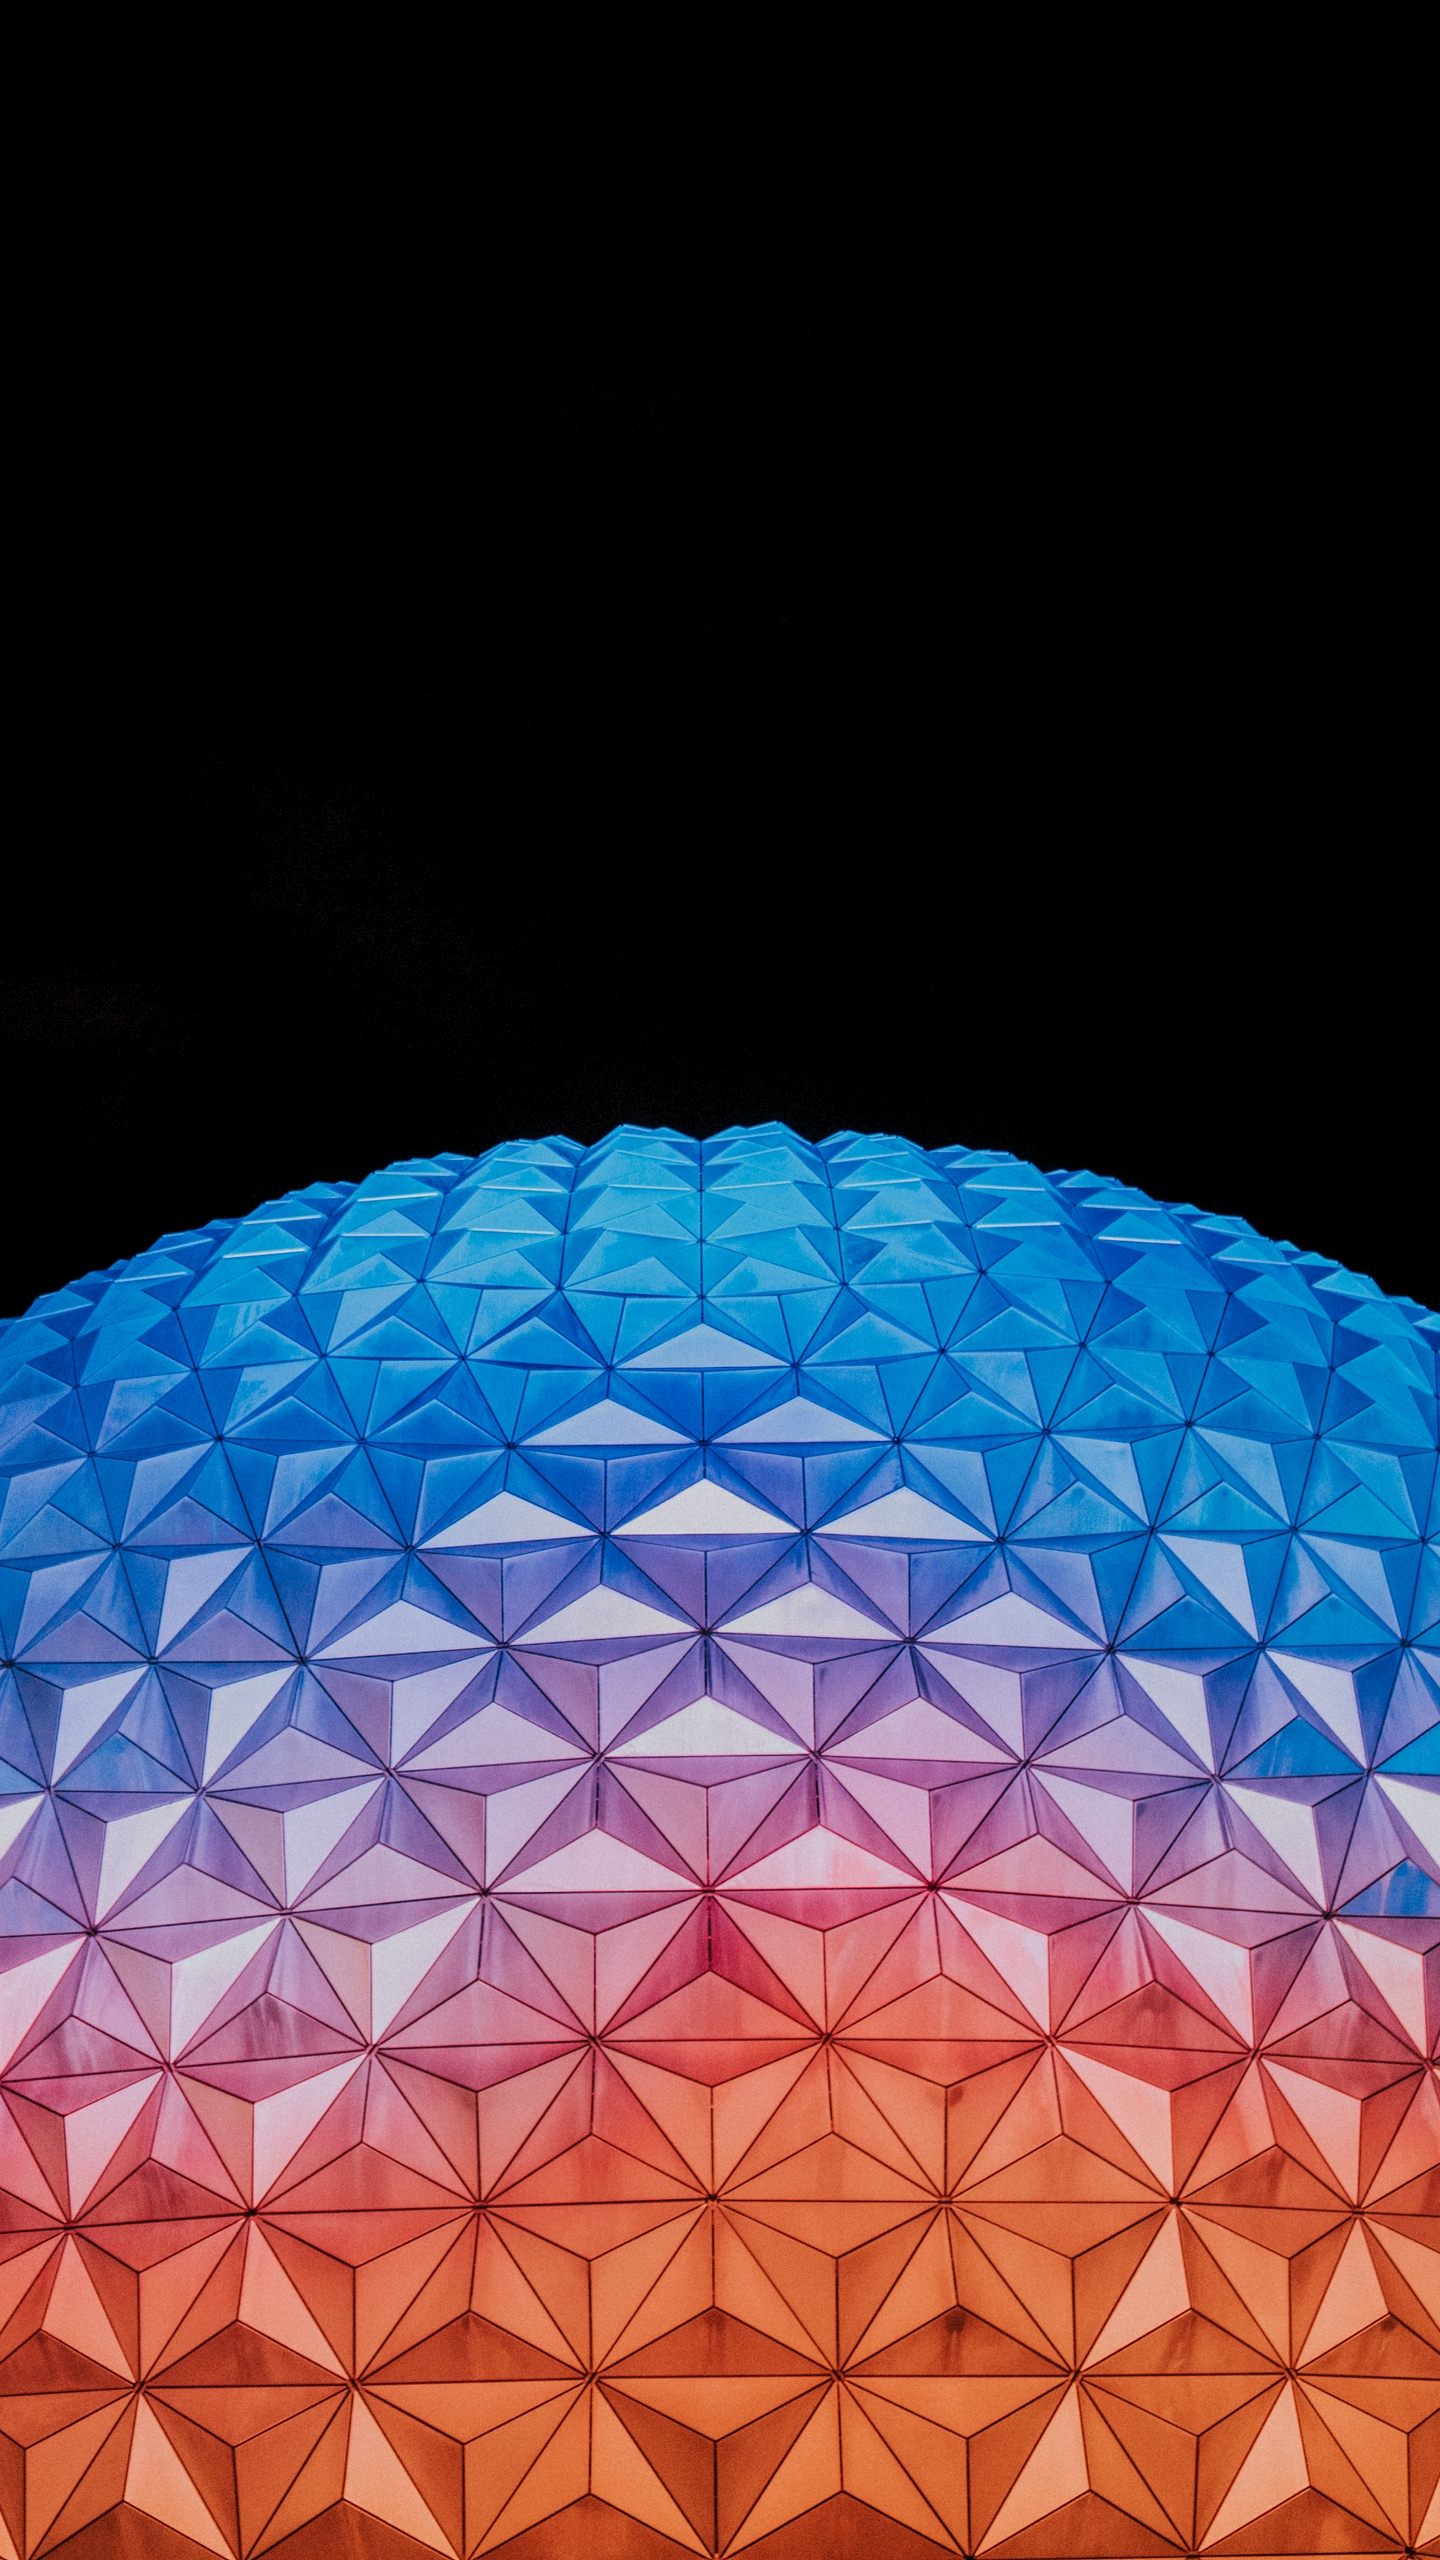 OLED wallpaper idownloadblog epcot